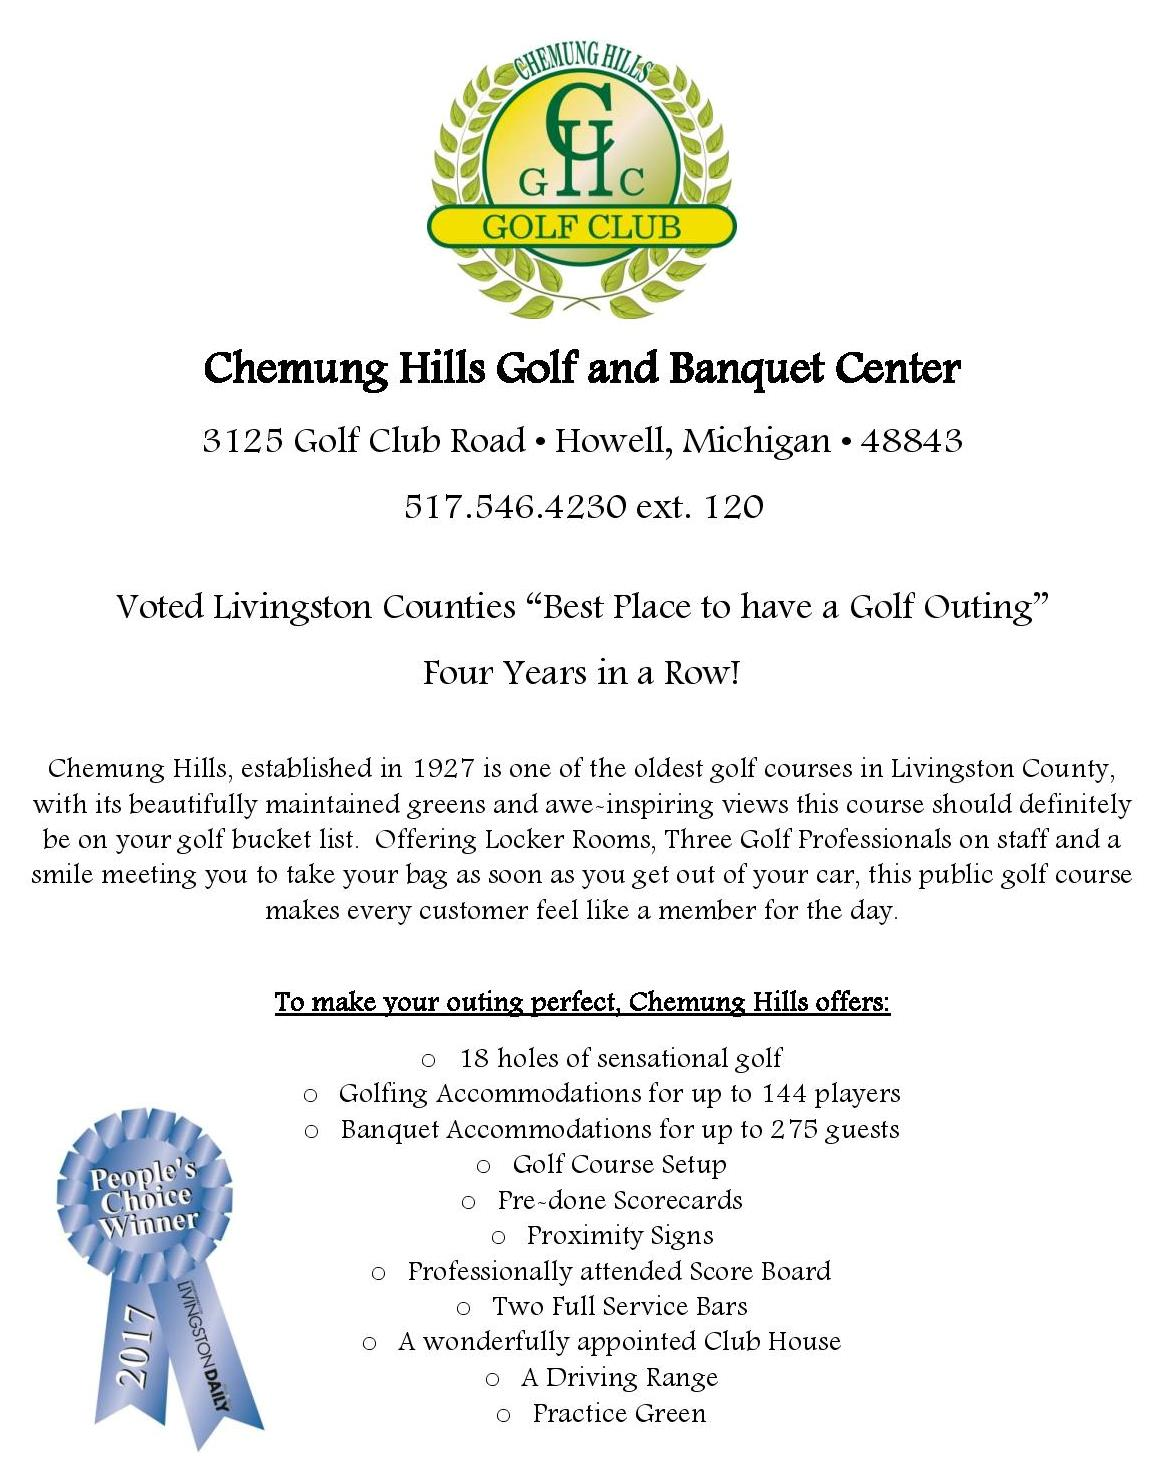 Chemung Hills Golf and Banquet Center - Outing Experts-page-001